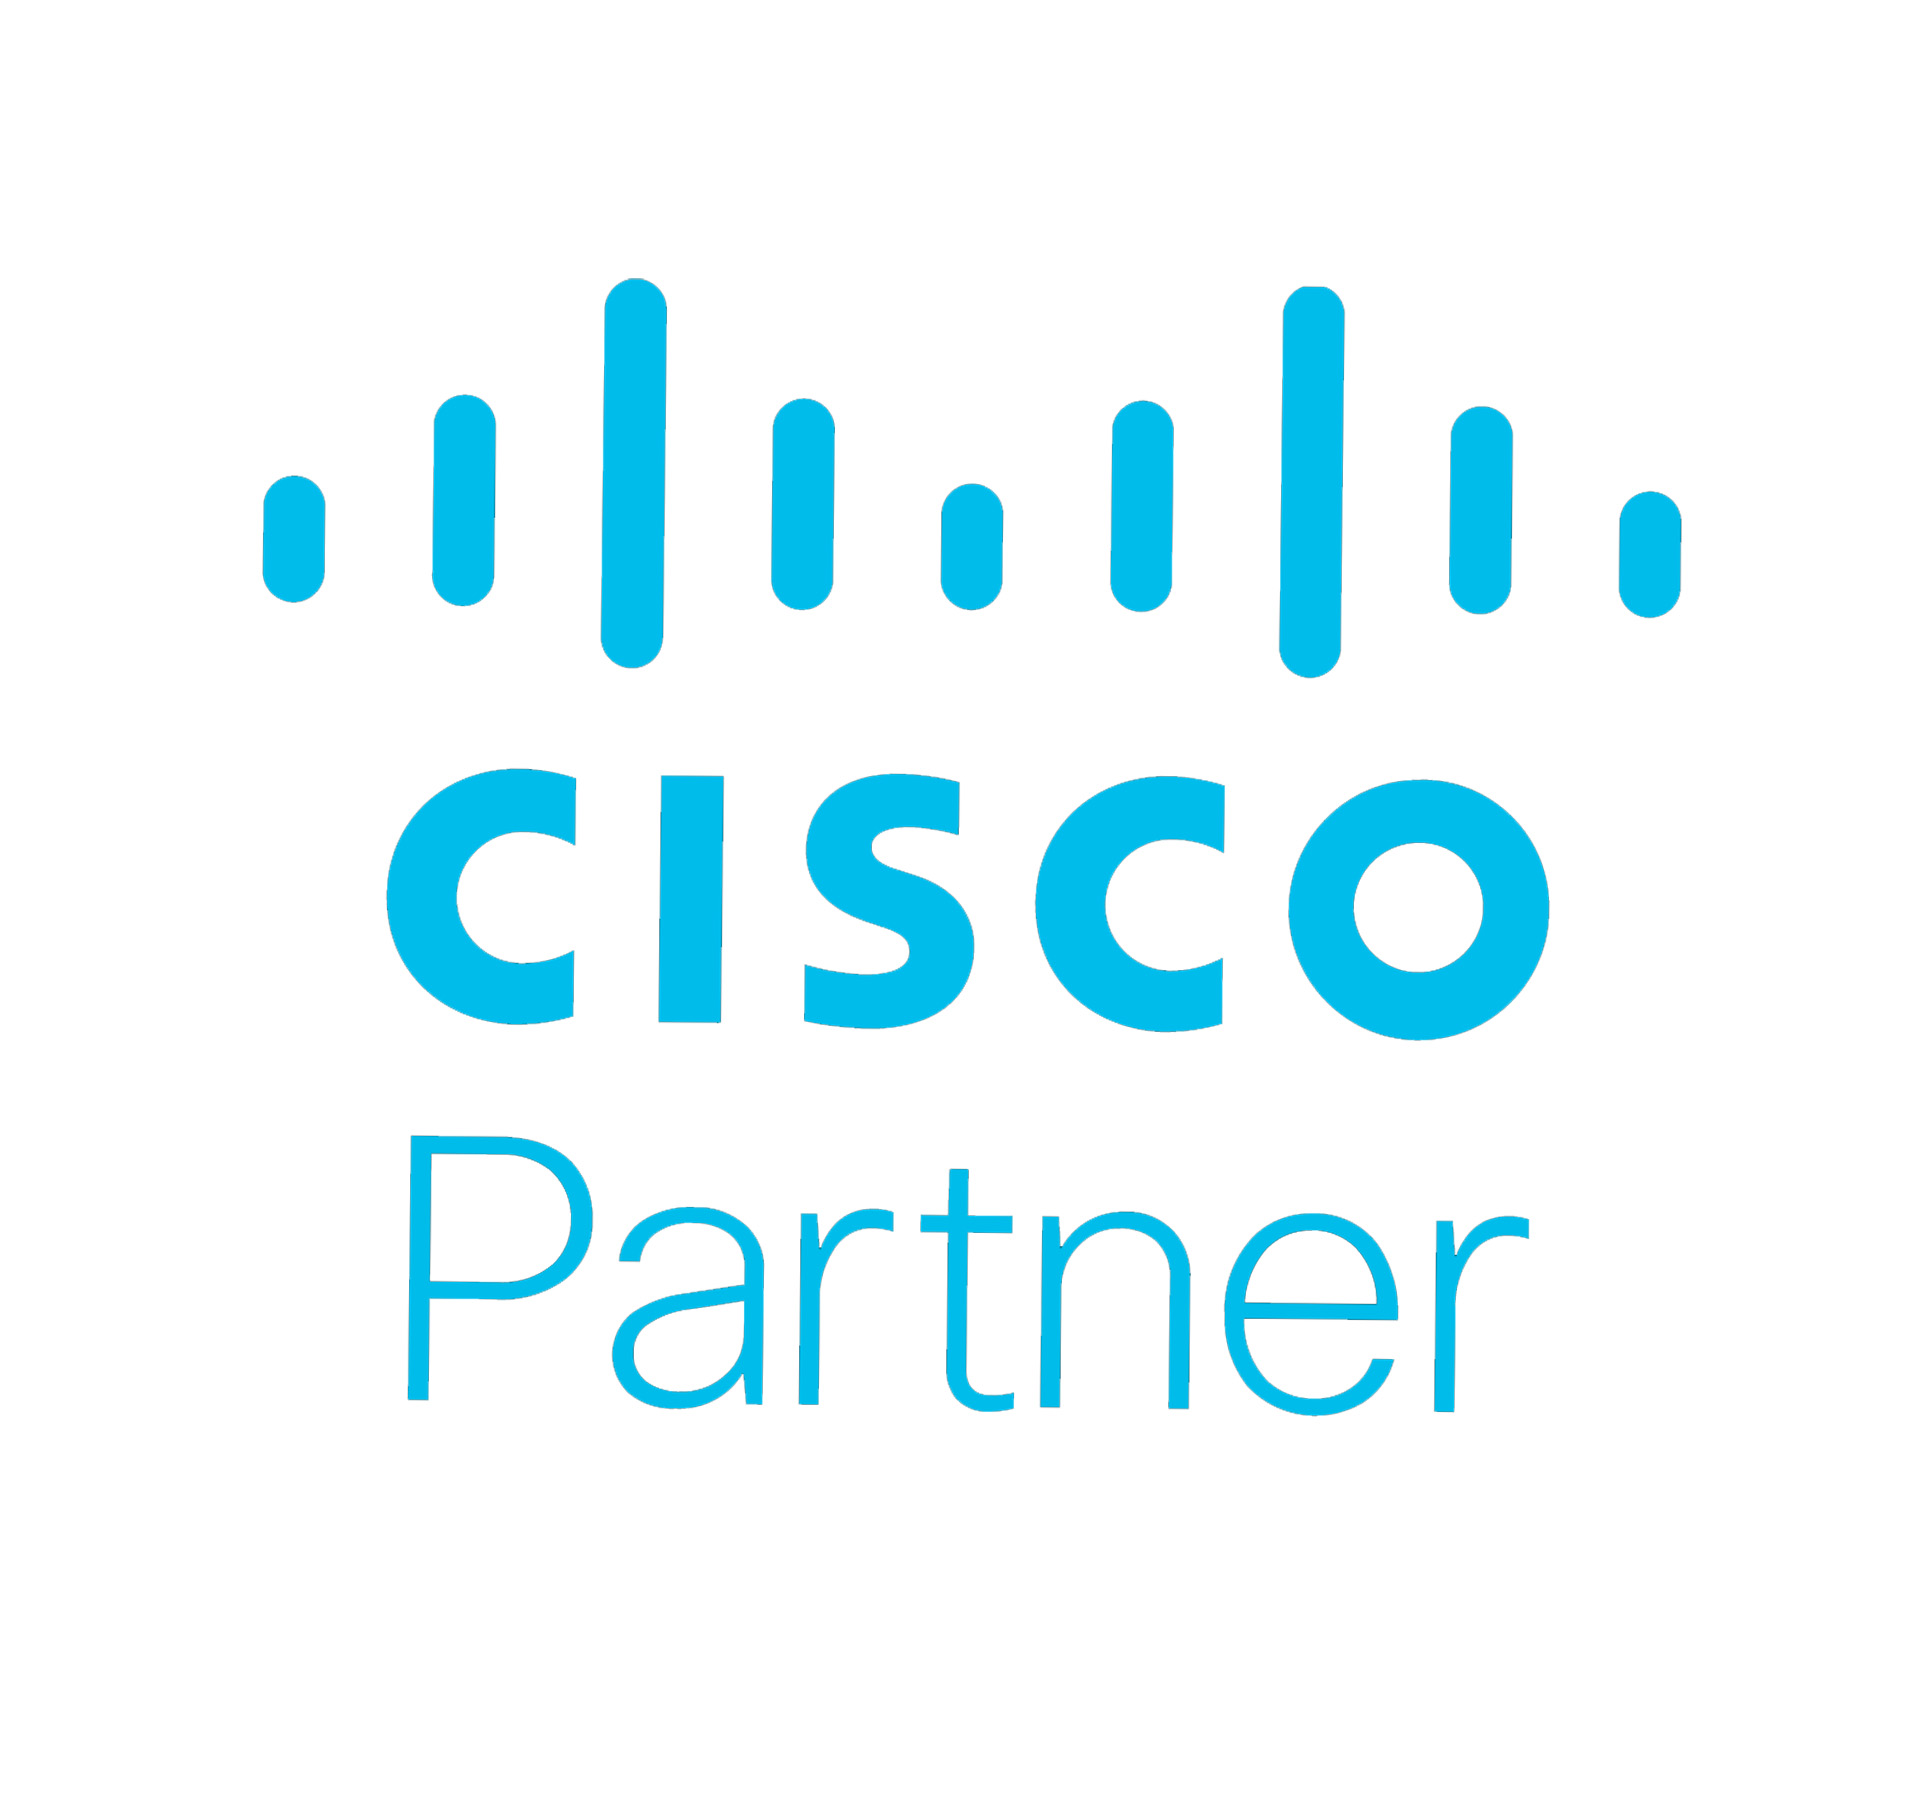 cisco_partner_logo_whitebg